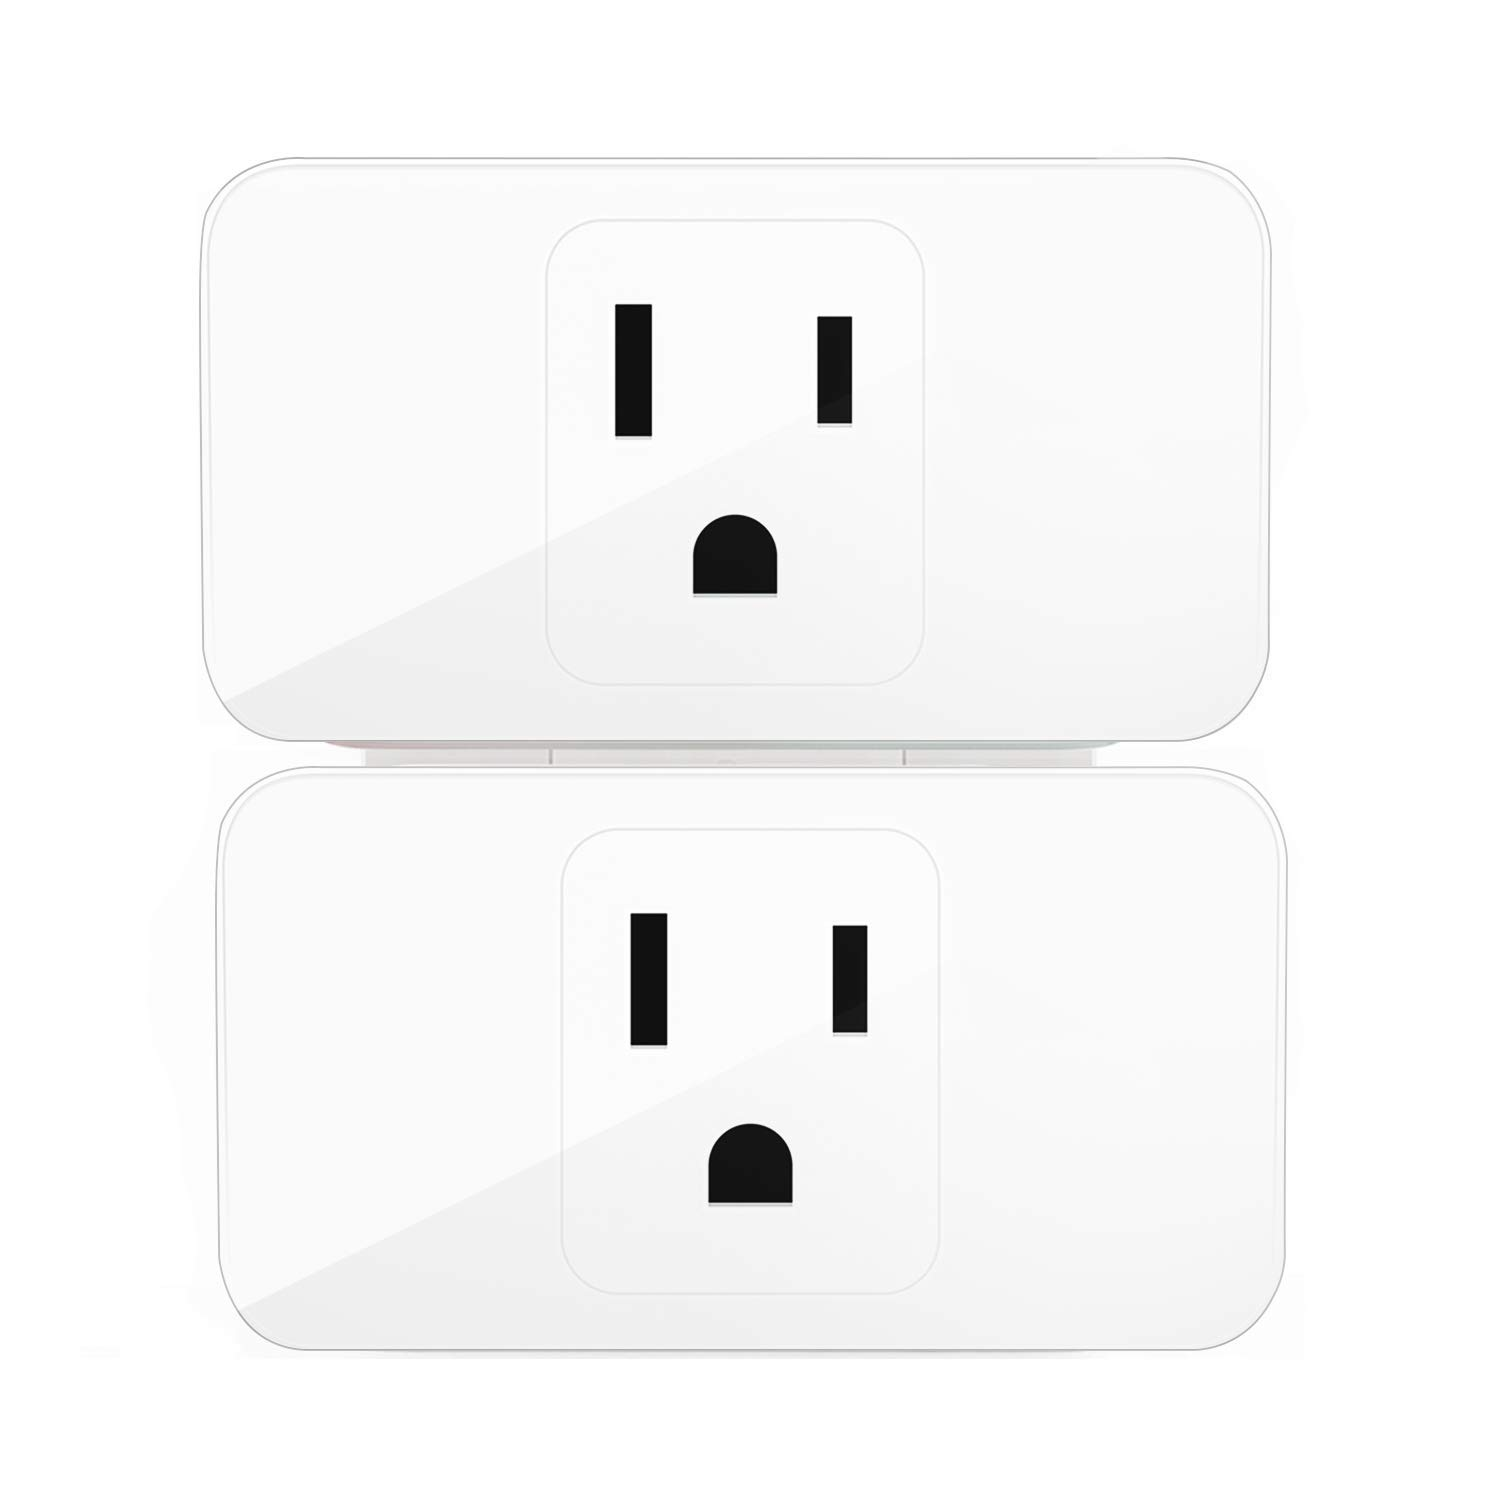 Meross Wifi Smart Plug, Wi-Fi Smart Socket Outlet Compatible with Alexa and Google Home, Control Your Lights, Appliances From Your Phone (2 pieces)